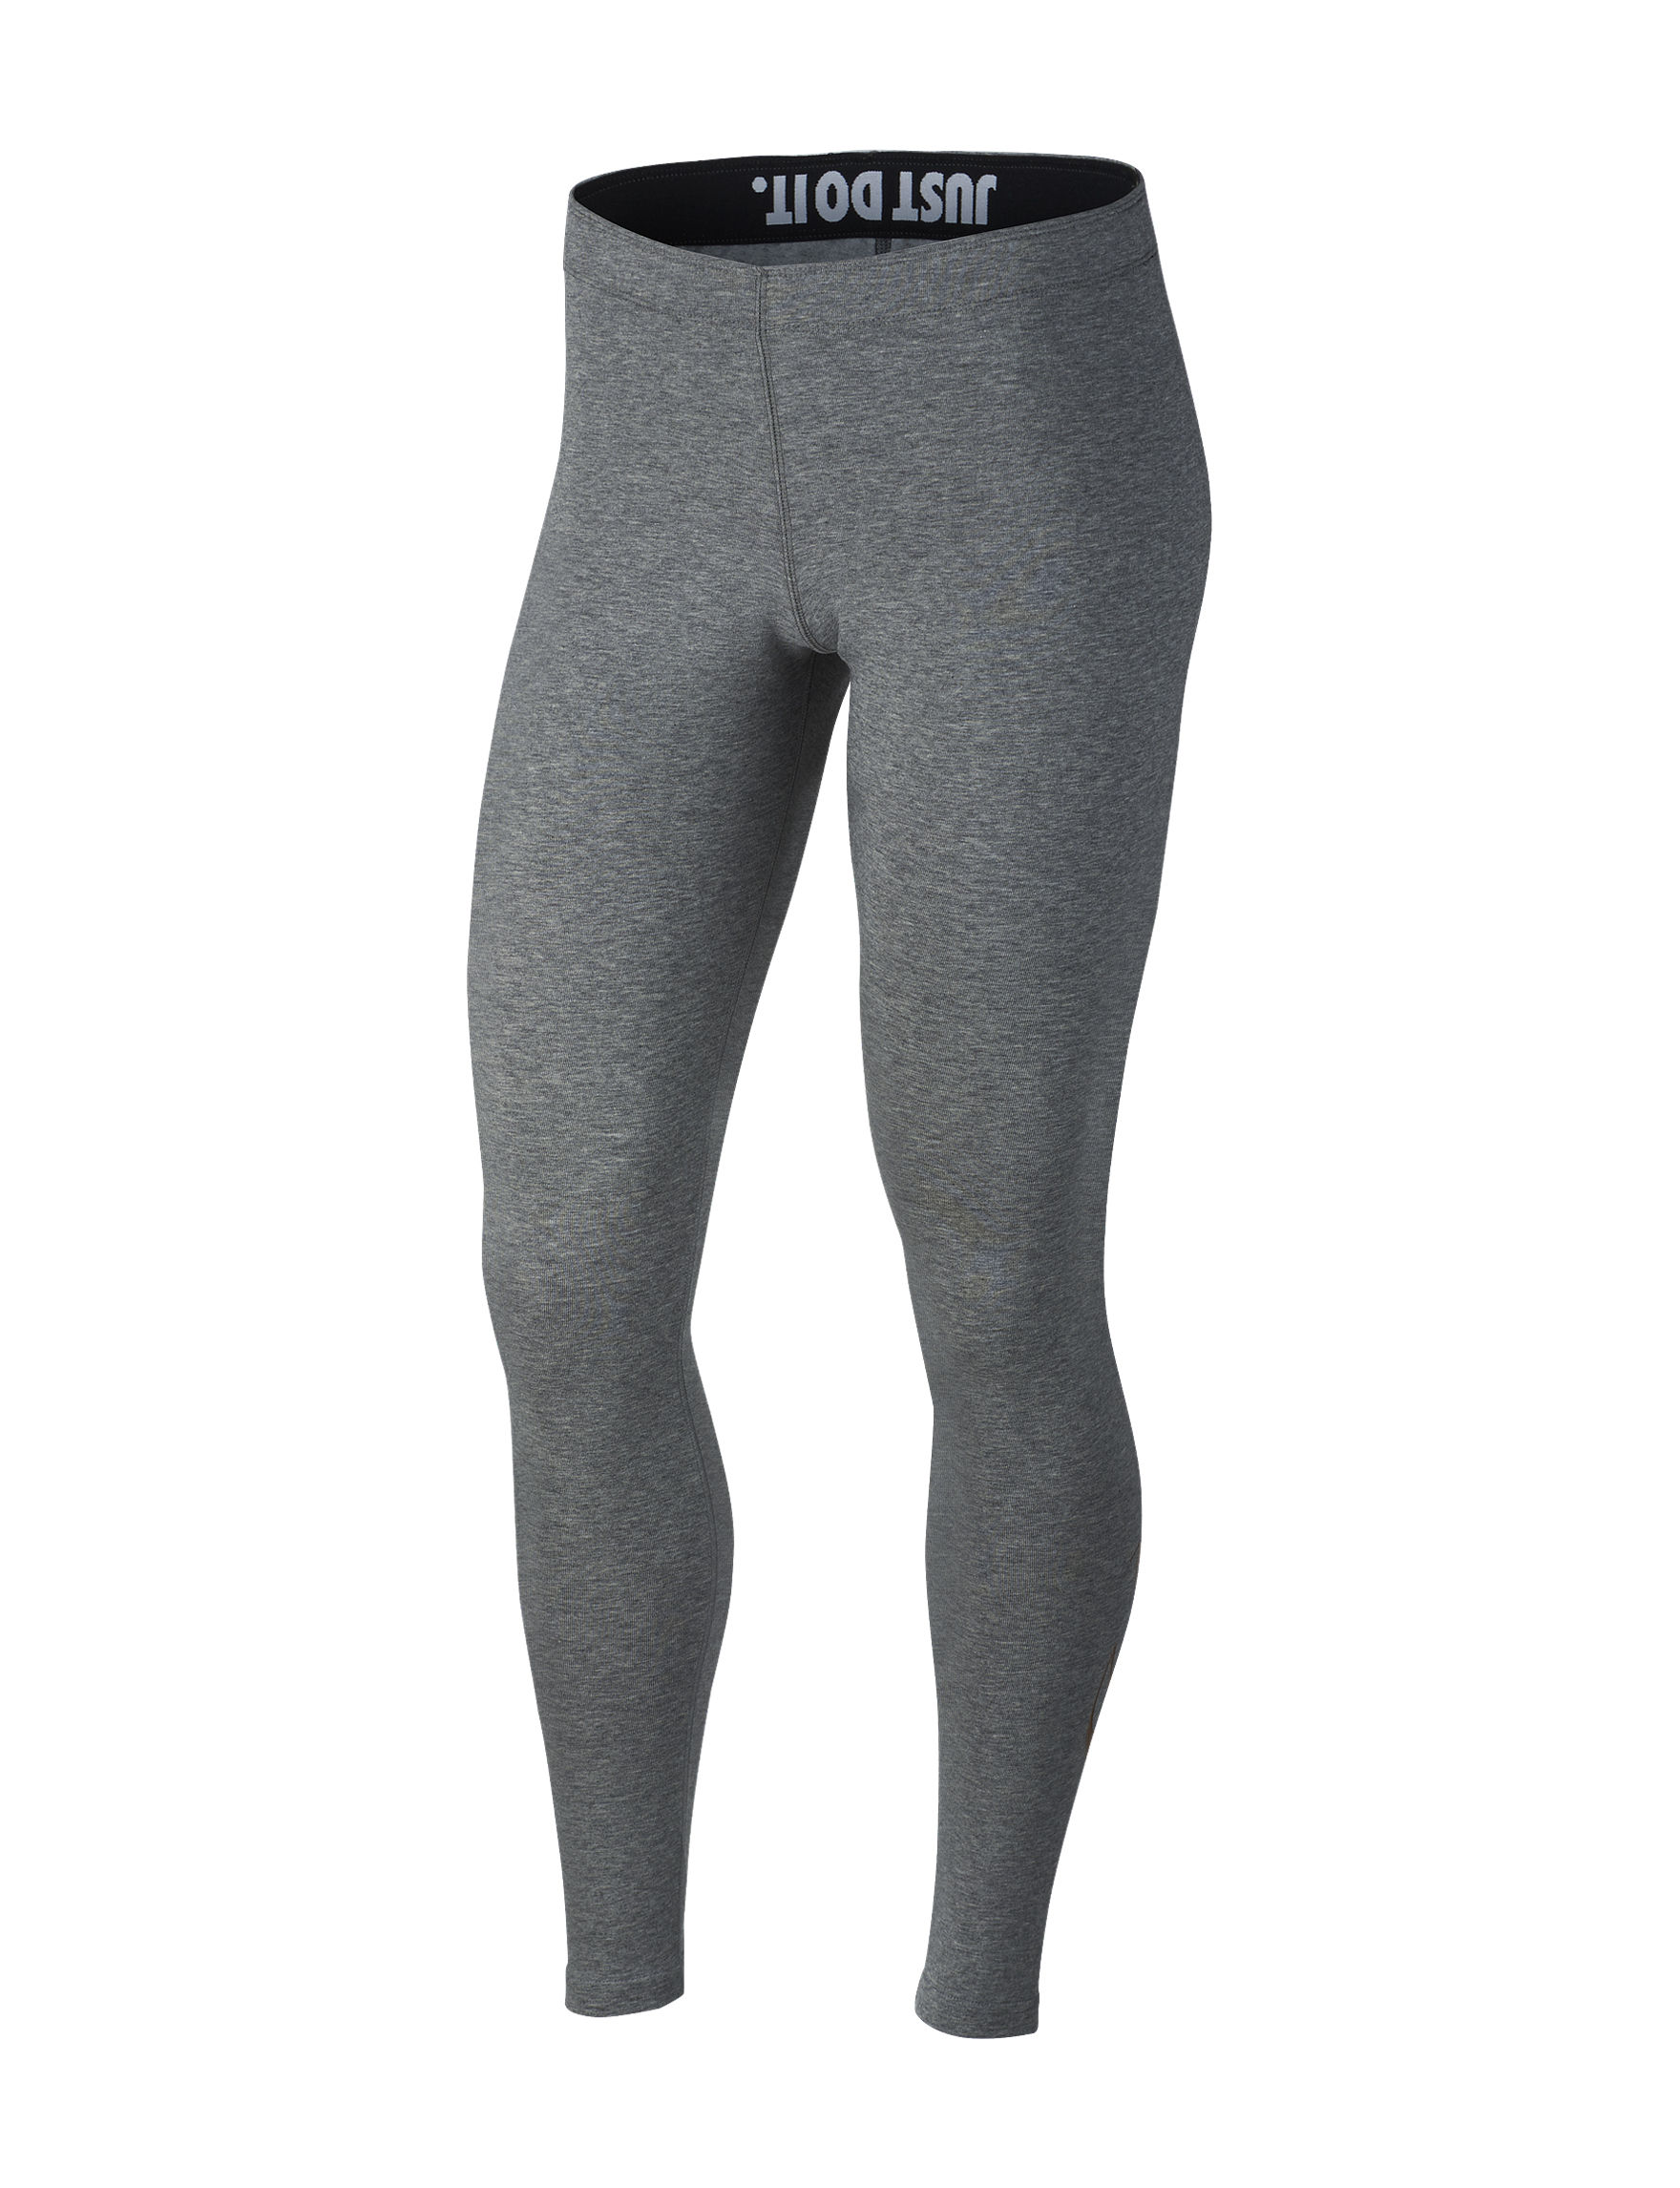 Nike Charcoal Leggings